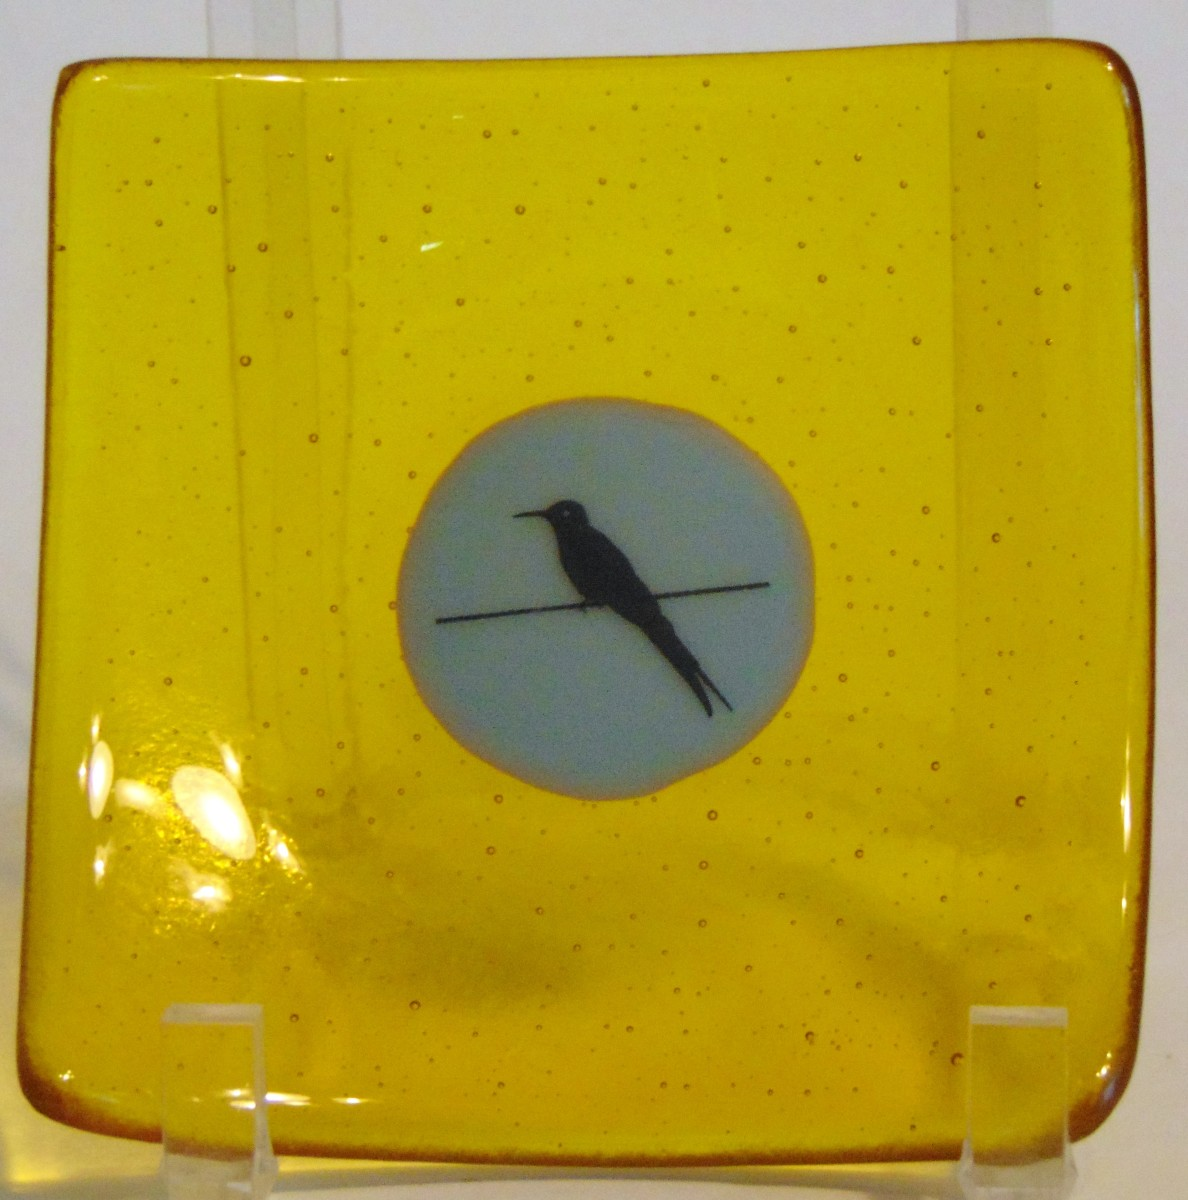 Plate-Yellow with blue center with bird decal